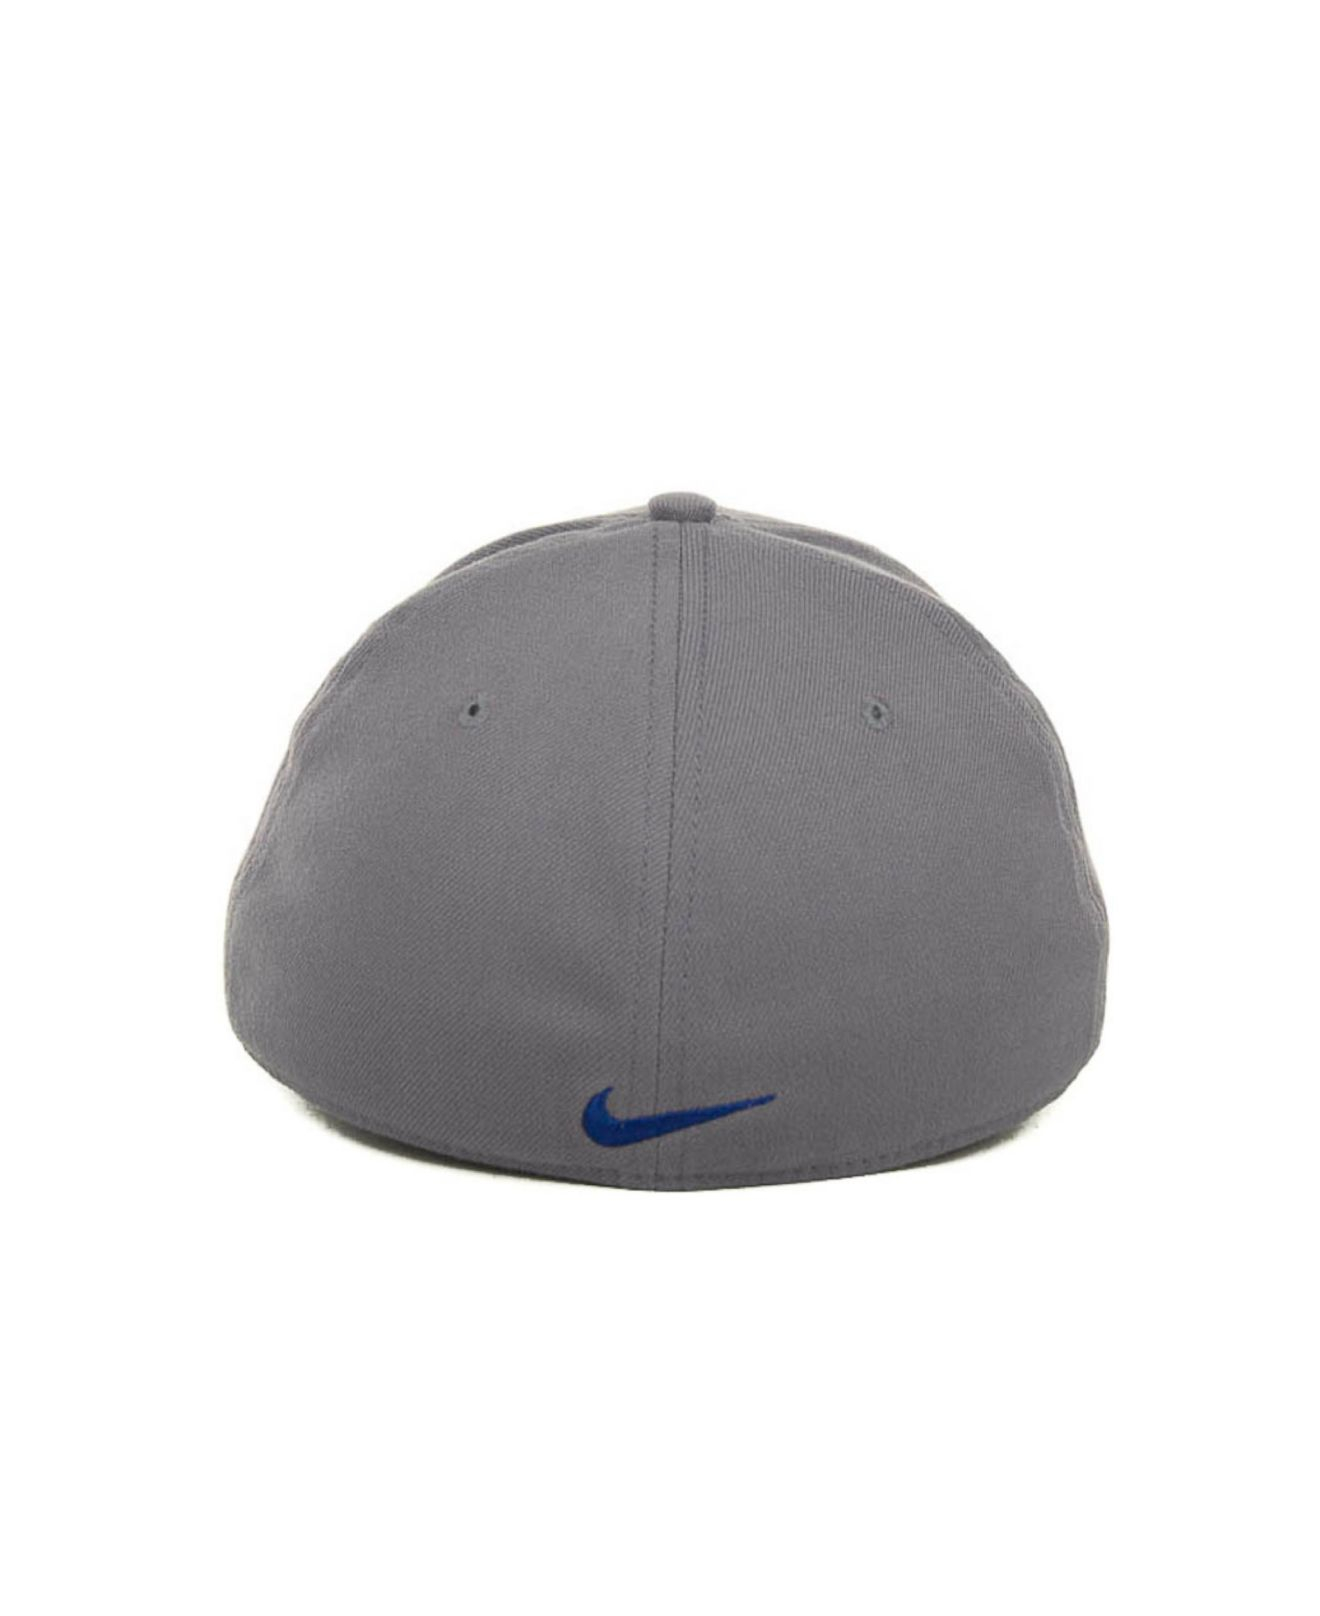 c25a7963 ... new arrivals lyst nike new york mets dri fit swoosh flex cap in gray  for men